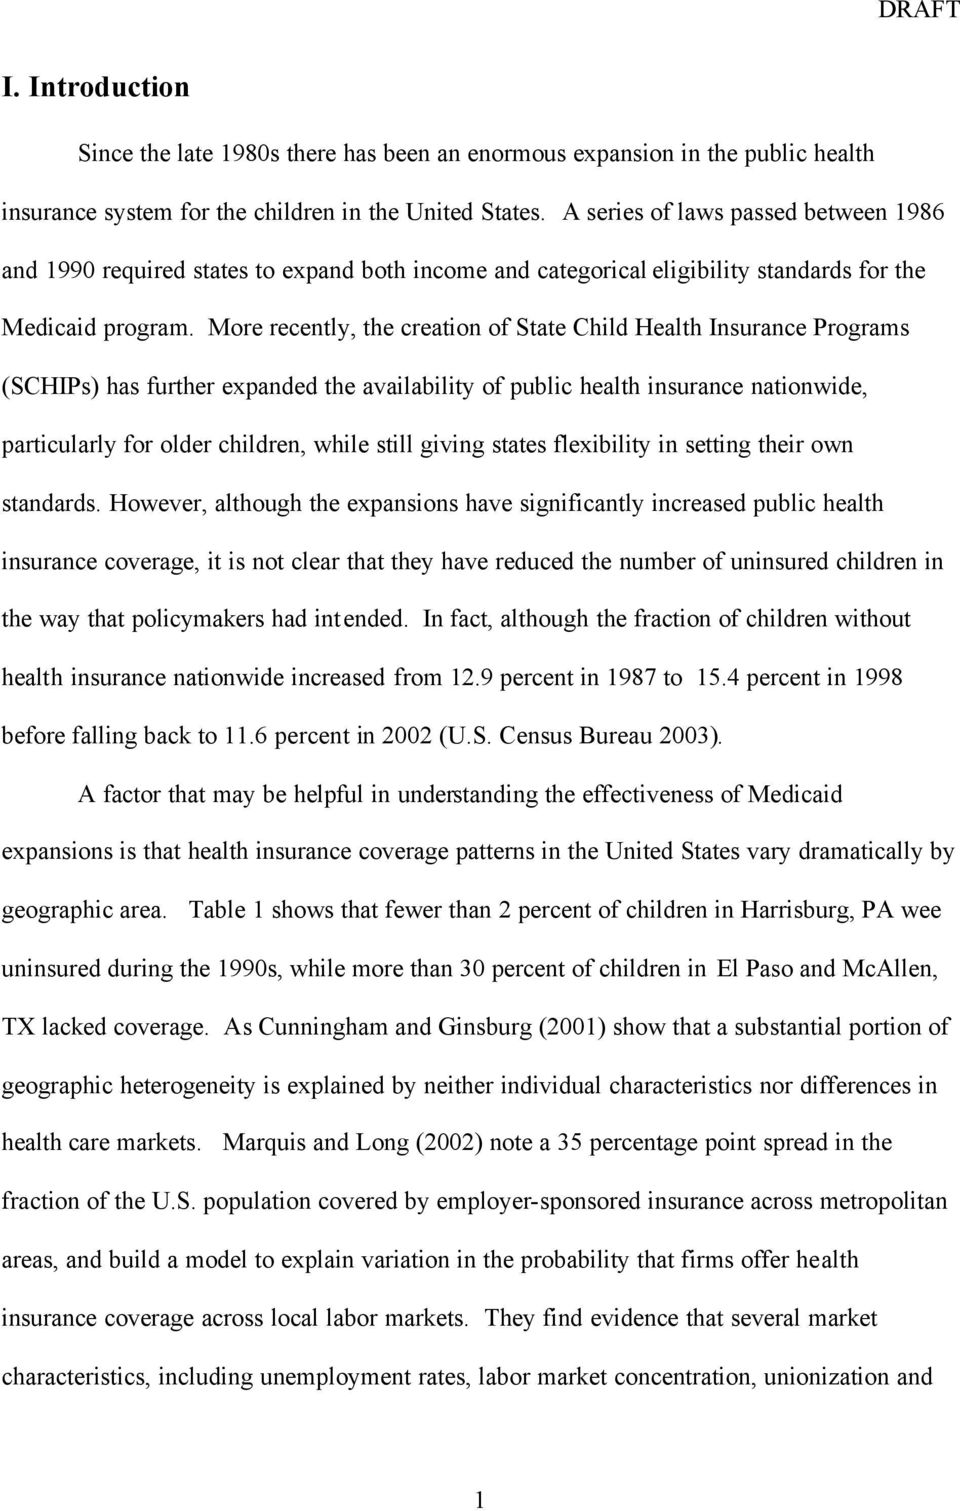 More recently, the creation of State Child Health Insurance Programs (SCHIPs) has further expanded the availability of public health insurance nationwide, particularly for older children, while still